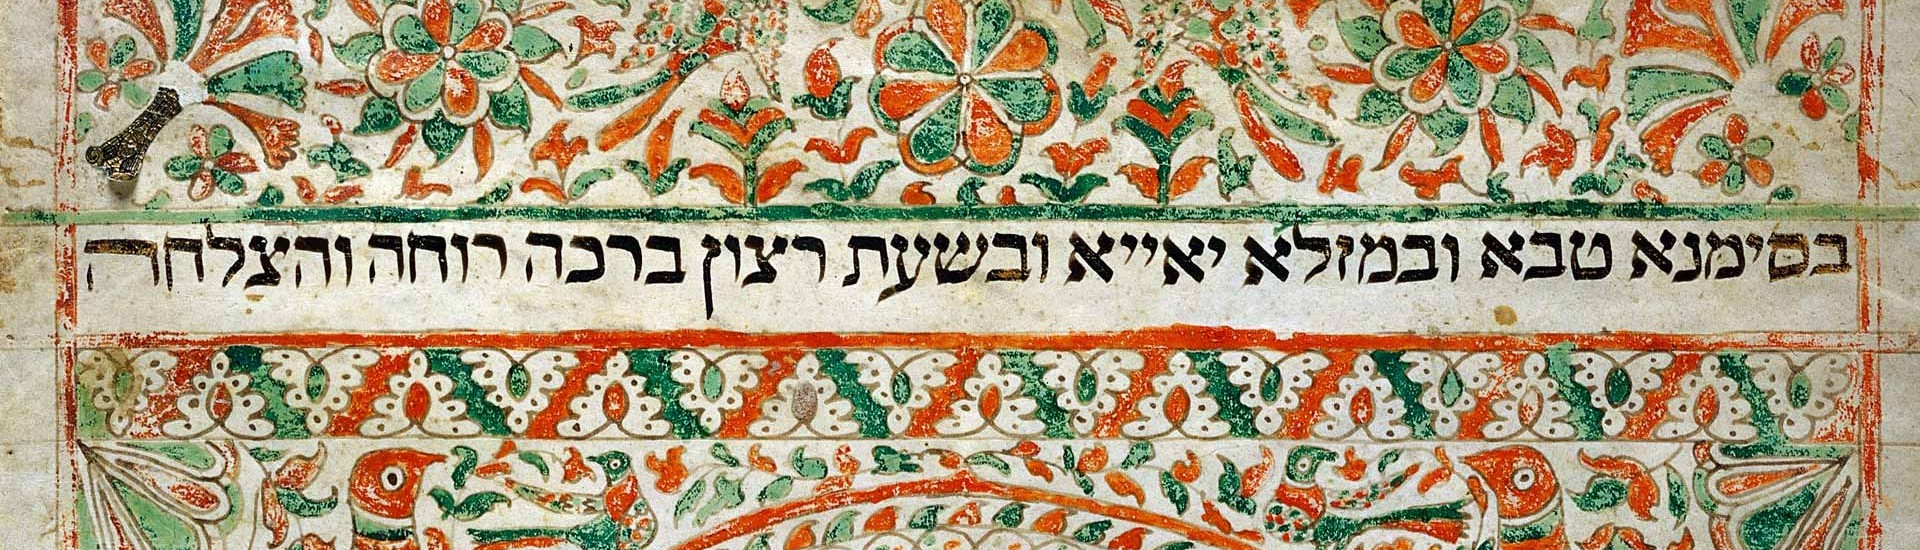 Hebrew_MS_A2,_Ketubbah,_marriage_contract_Wellcome_L0030970_1920